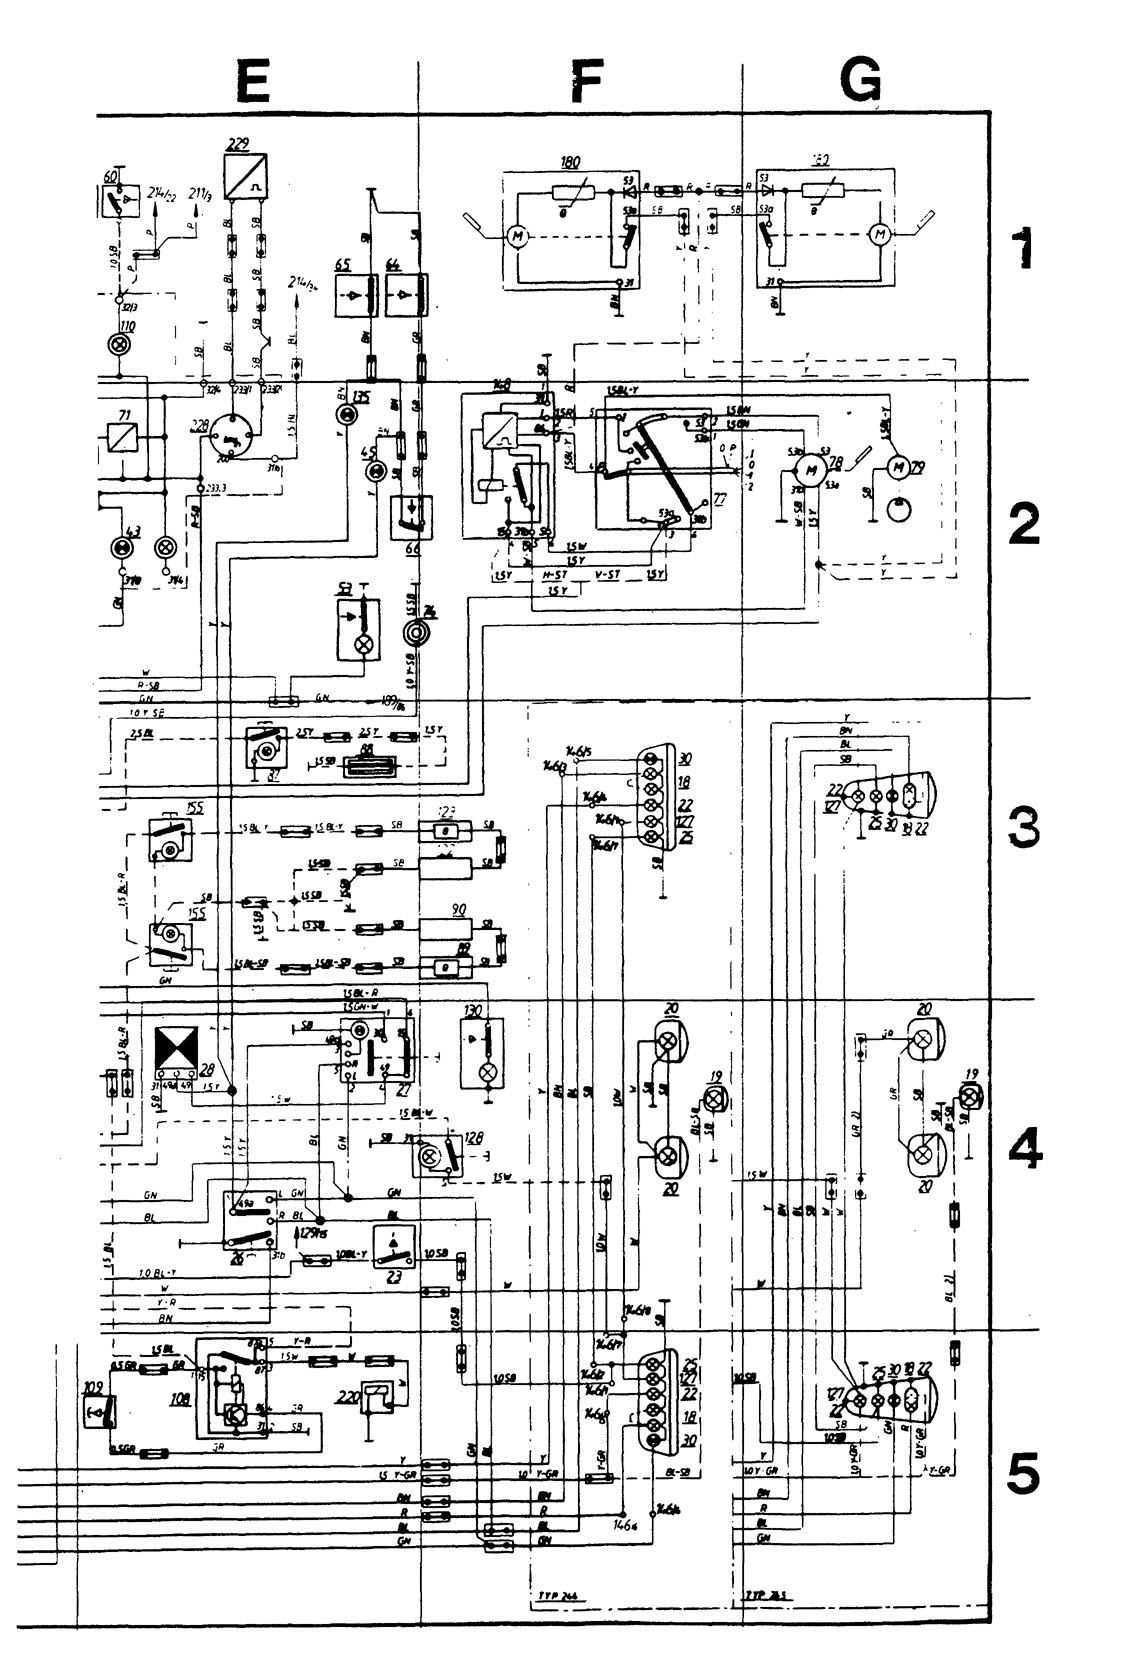 volvo 245 (1989) - wiring diagrams - audio - carknowledge 2004 volvo xc90 radio wiring diagram volvo vr300 radio wiring diagram